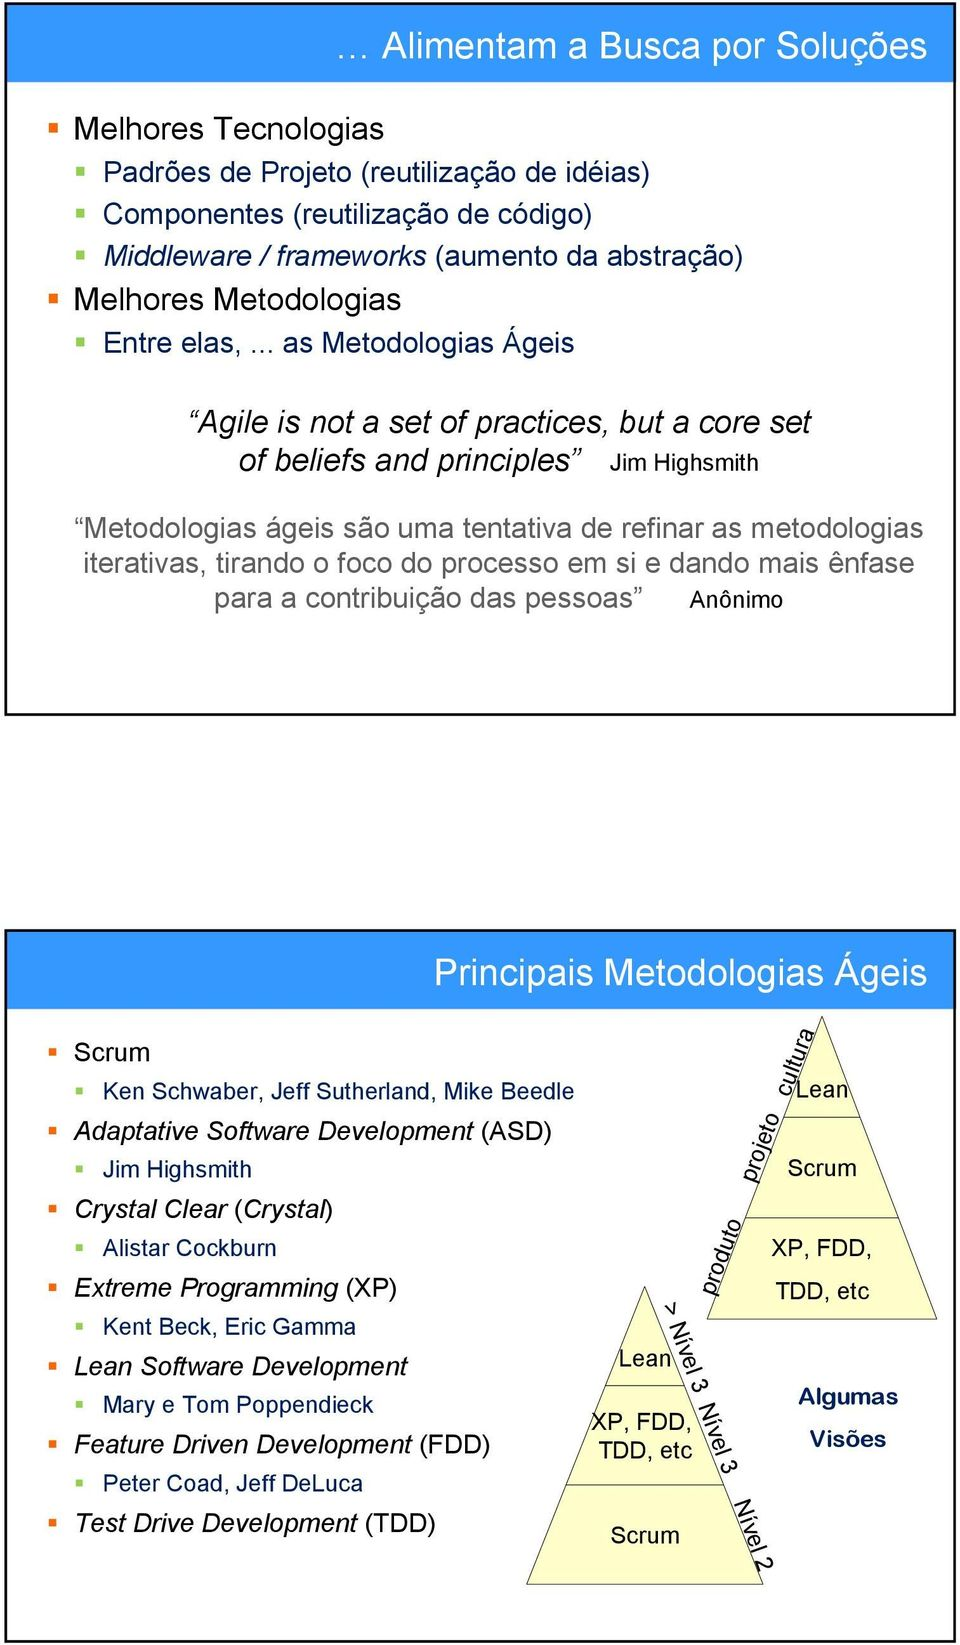 .. as Metodologias Ágeis Agile is not a set of practices, but a core set of beliefs and principles Jim Highsmith Metodologias ágeis são uma tentativa de refinar as metodologias iterativas, tirando o